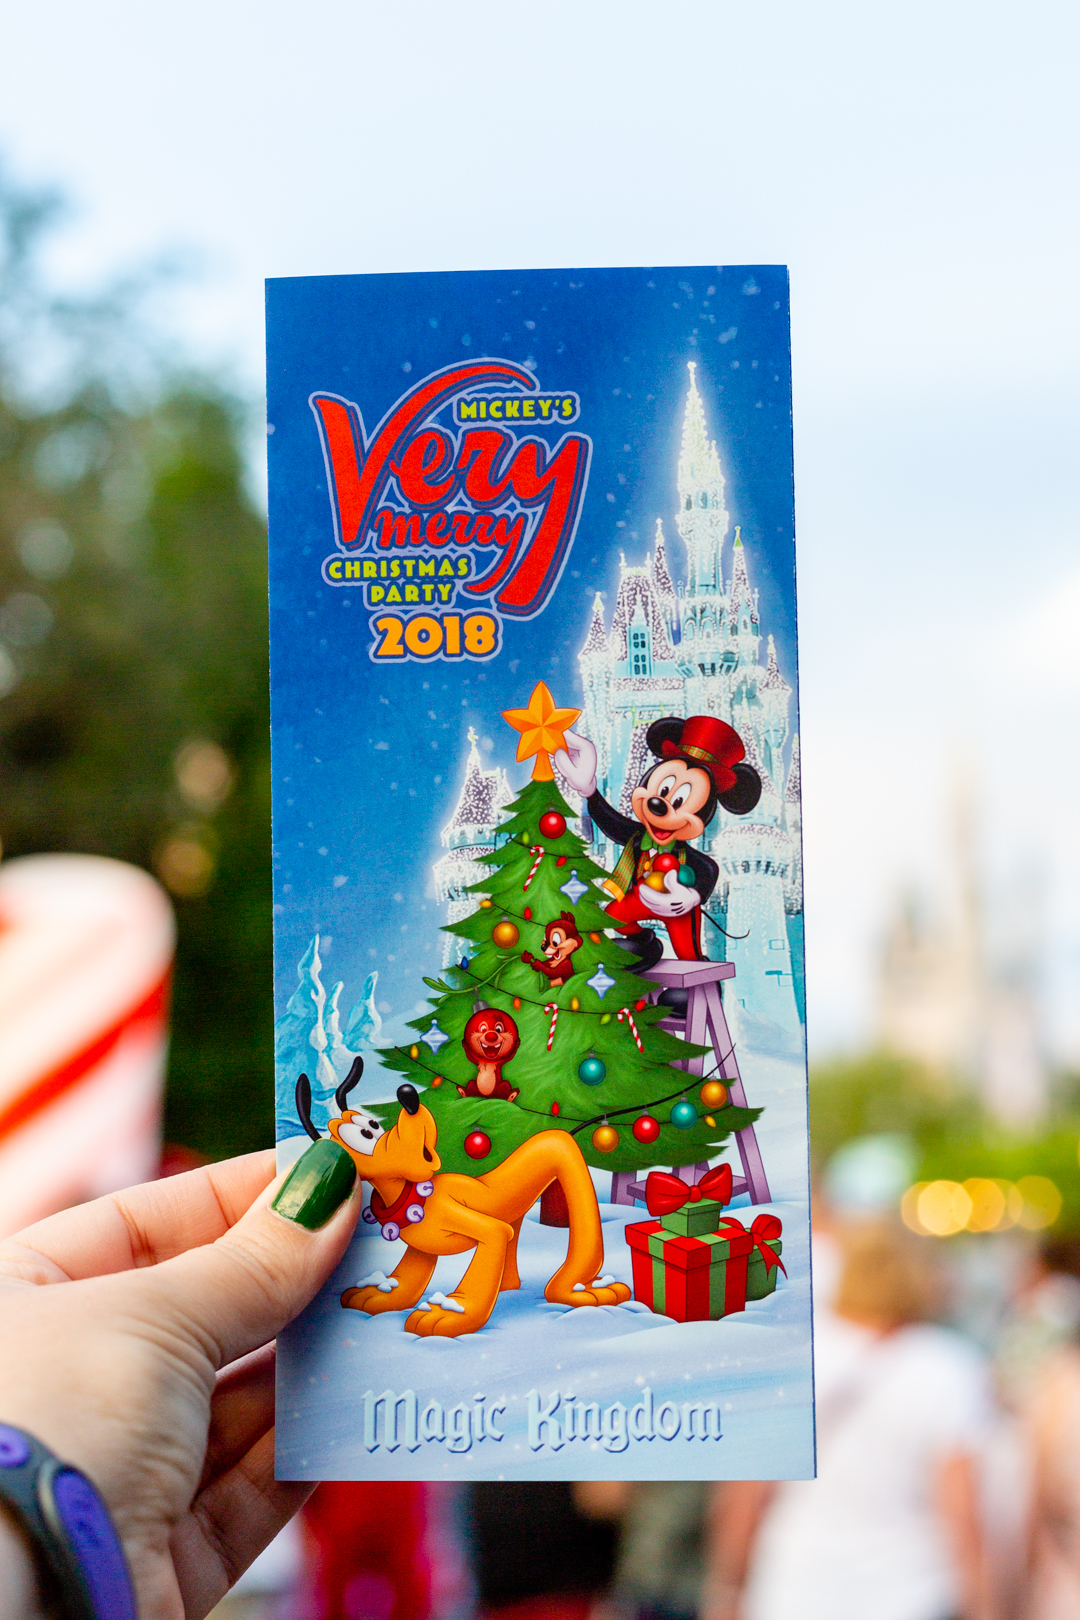 WDW Very Merry Christmas party guide.